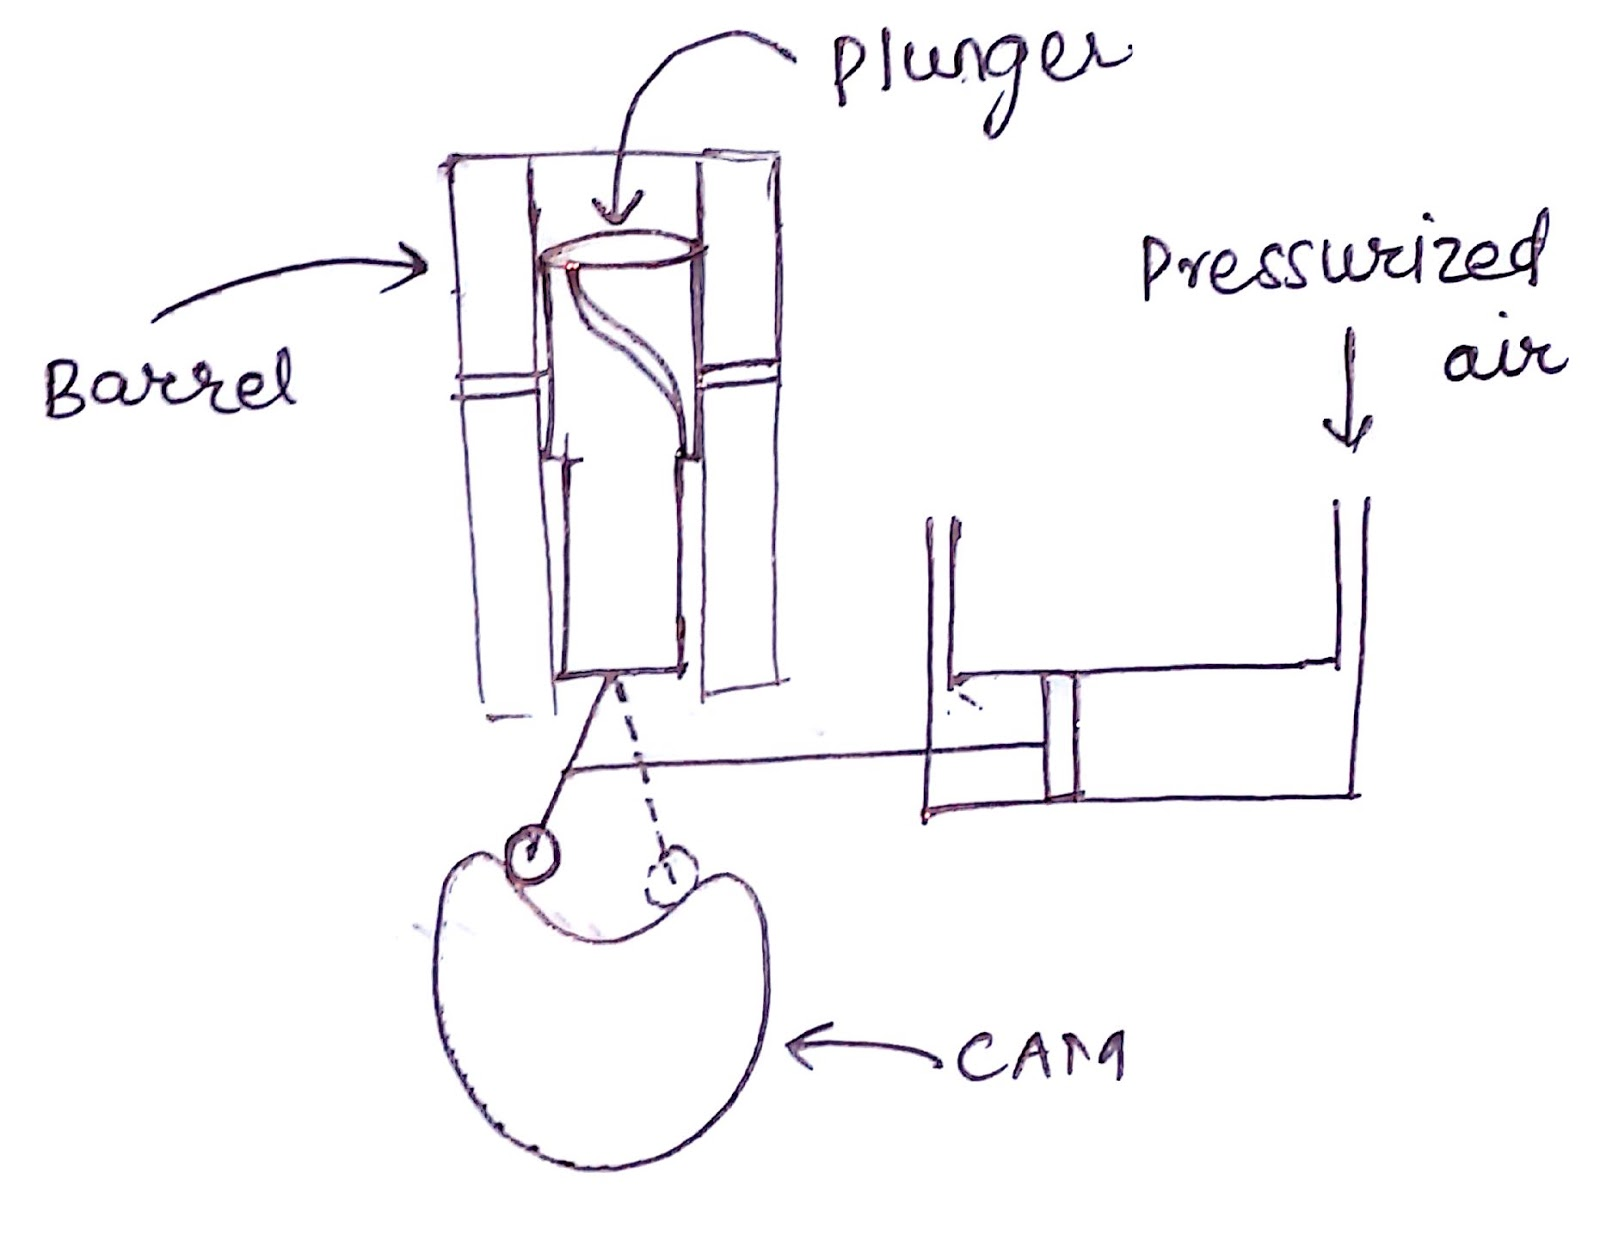 Compressed air from the starting system is used to actuate the pneumatic  cylinder and piston which displaces each follower unit.